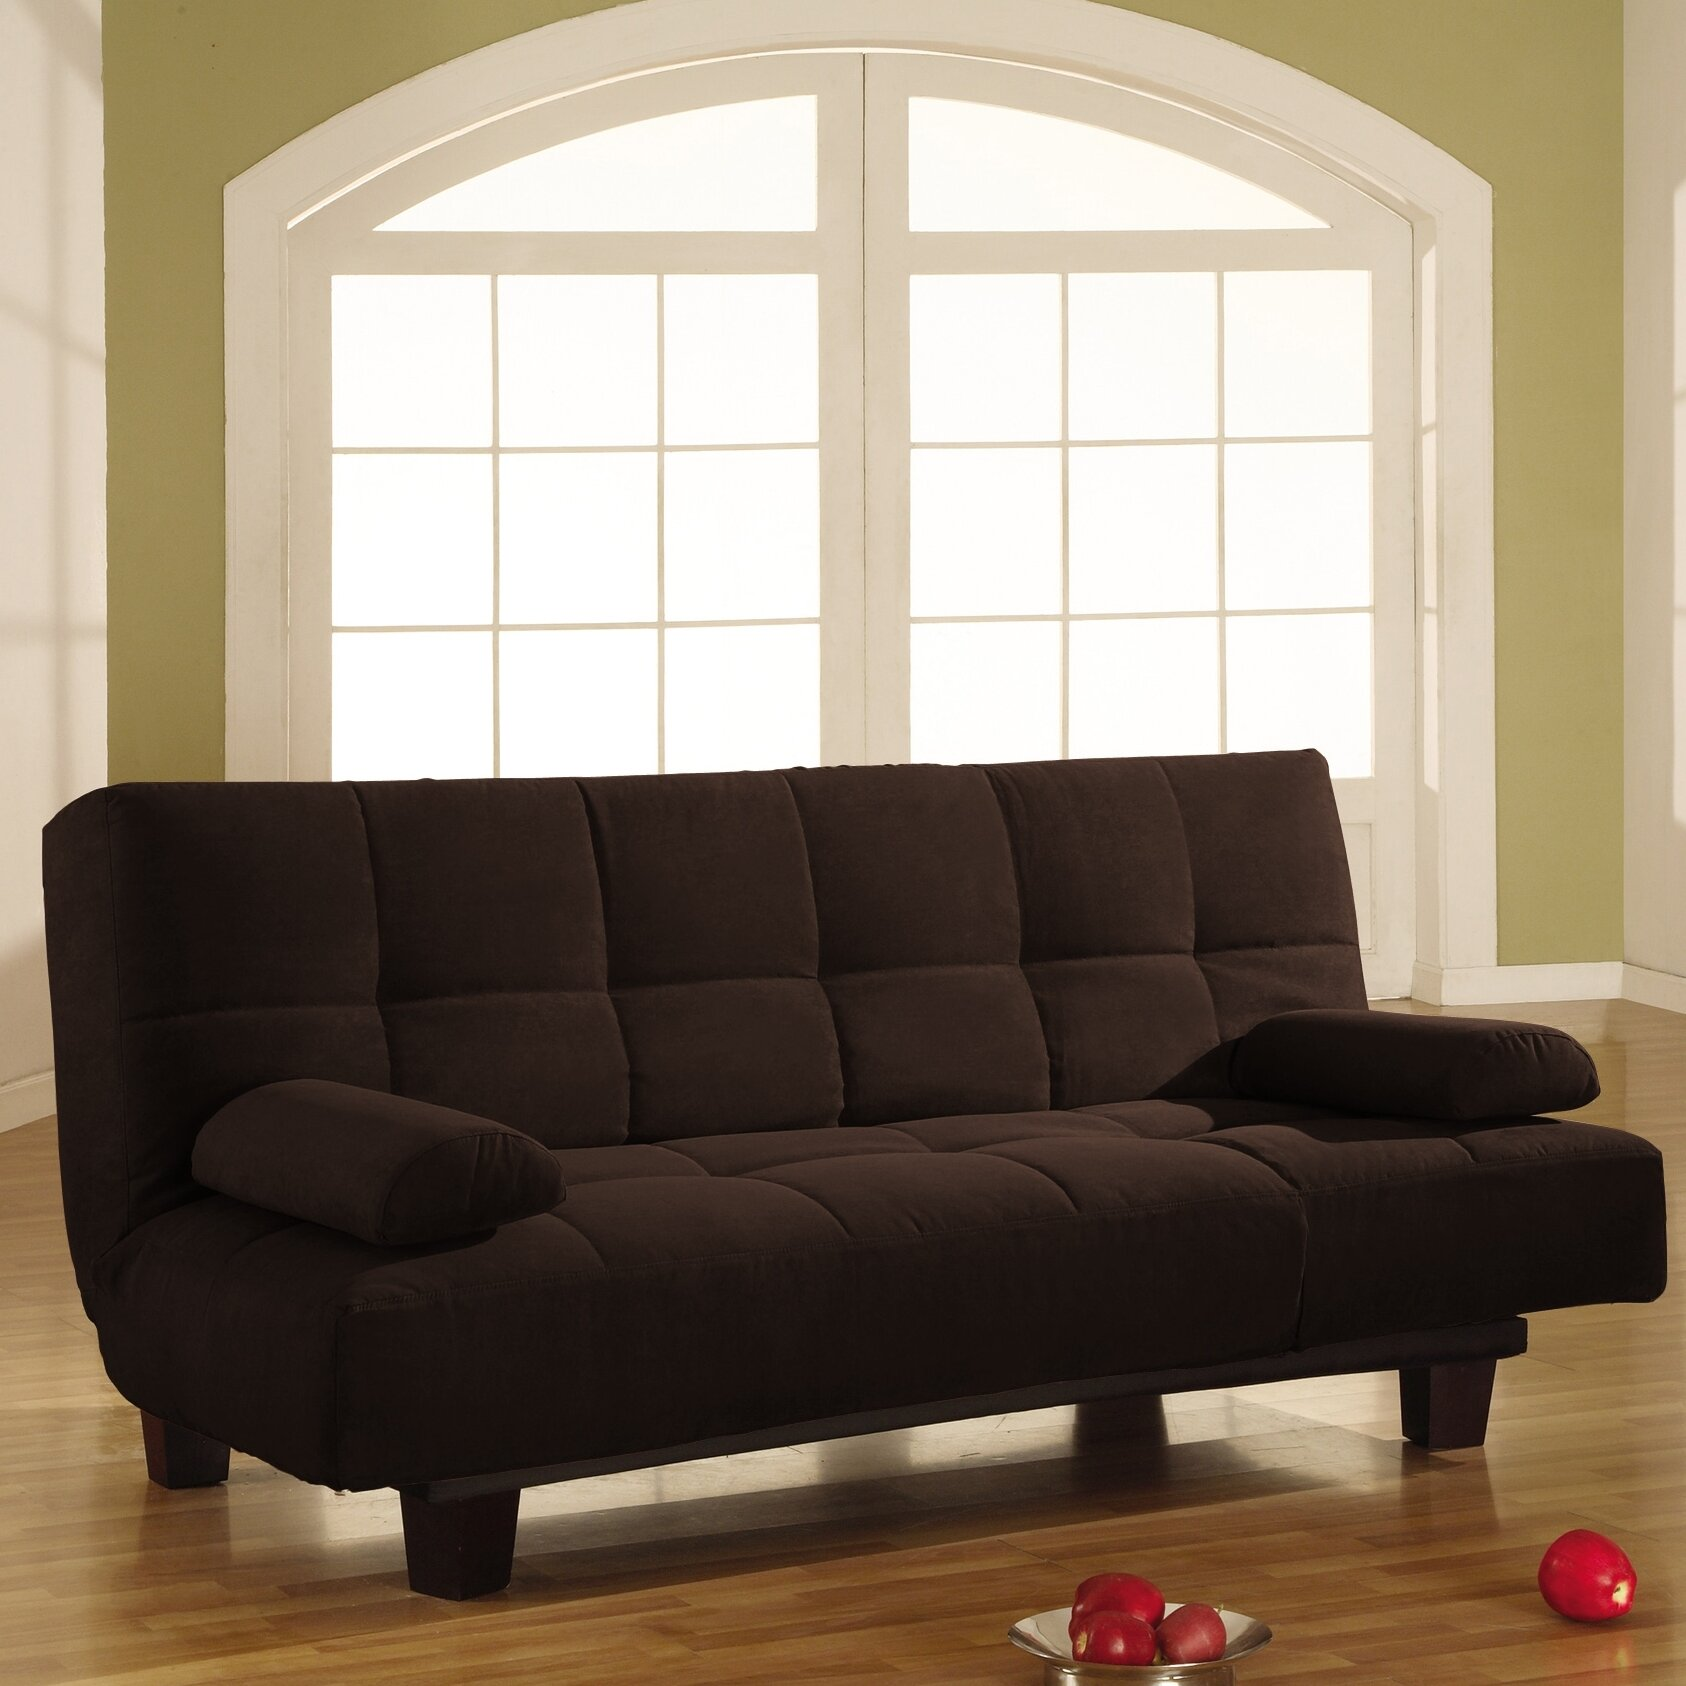 Lifestyle Solutions Serta Dream Sleeper Sofa Amp Reviews